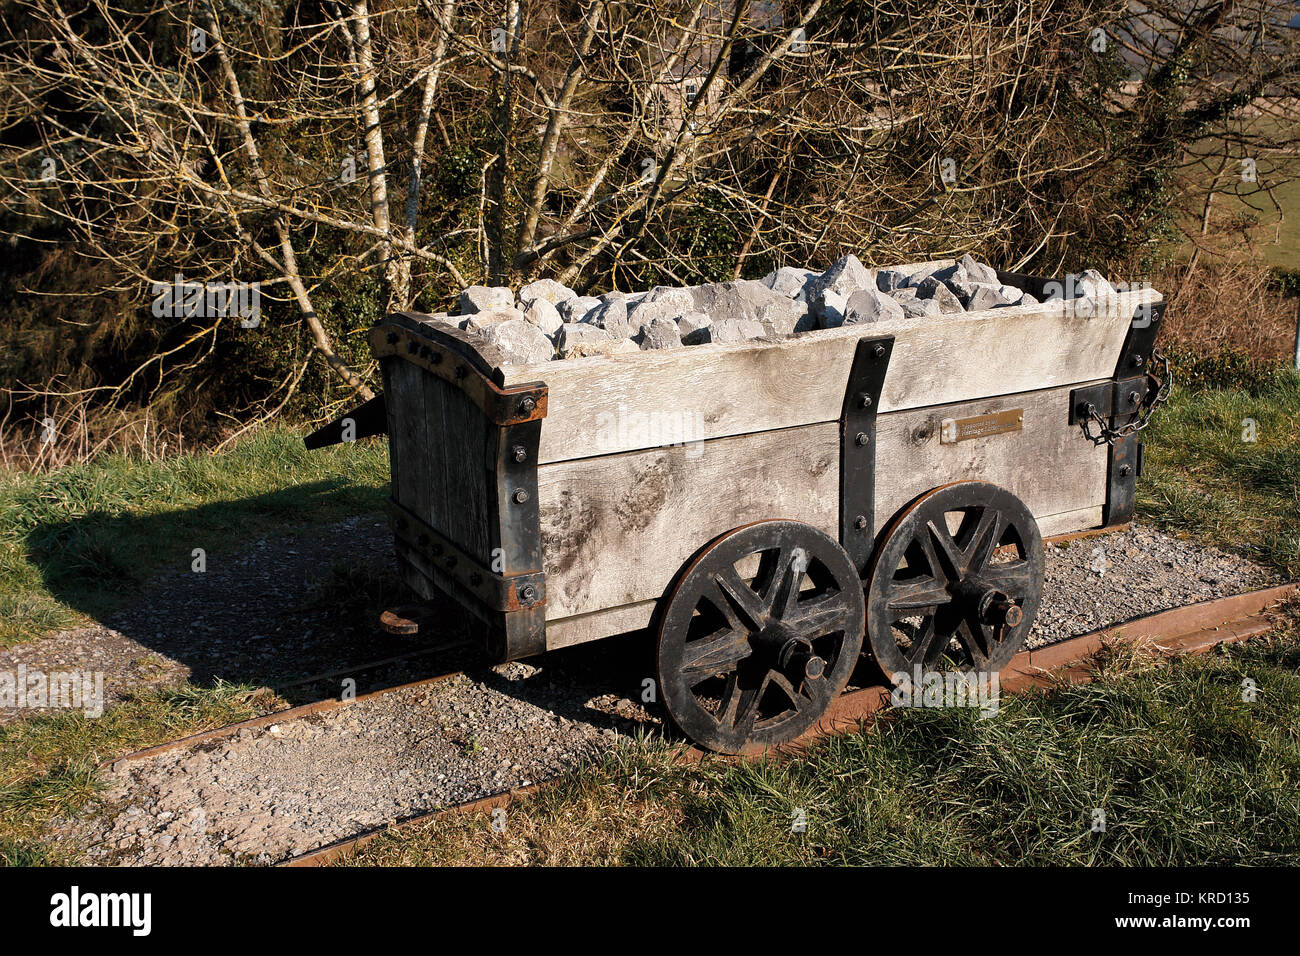 A replica truck on display at Brinore Tramroad, Talybont canalside, in the Brecon Beacons National Park, Wales. - Stock Image